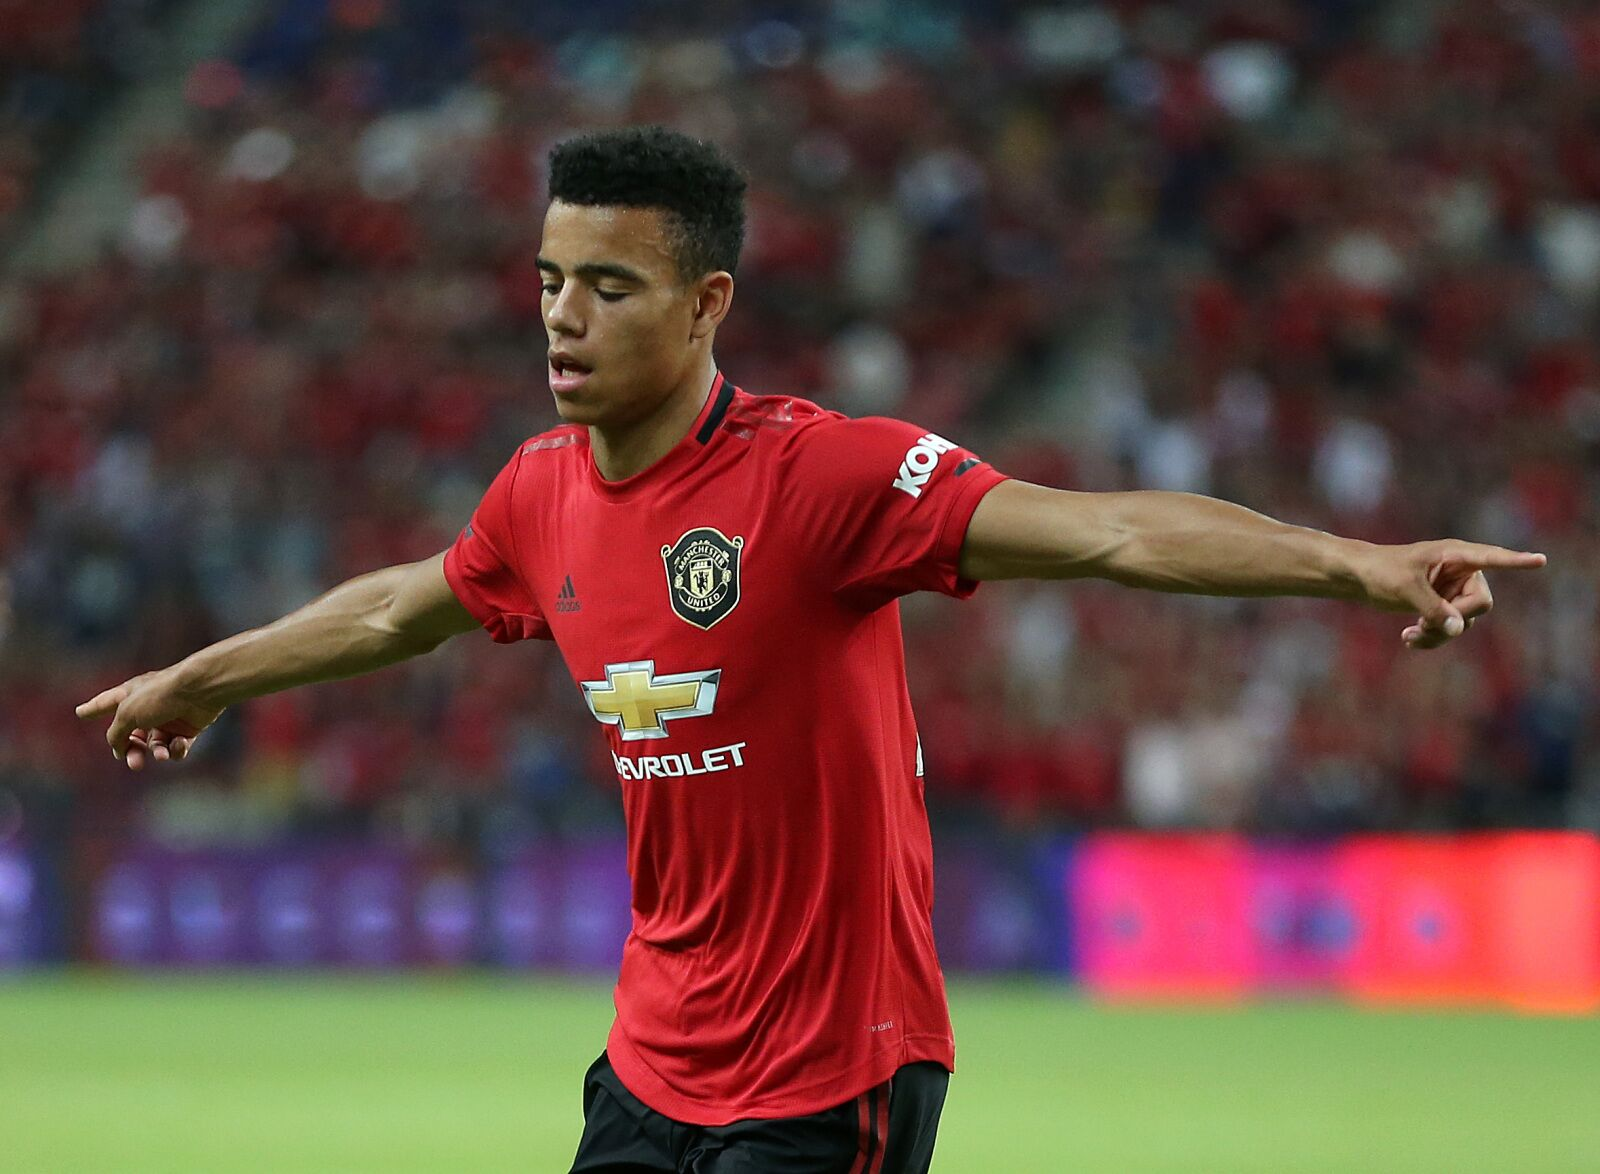 Mason Greenwood shines for Manchester United in preseason